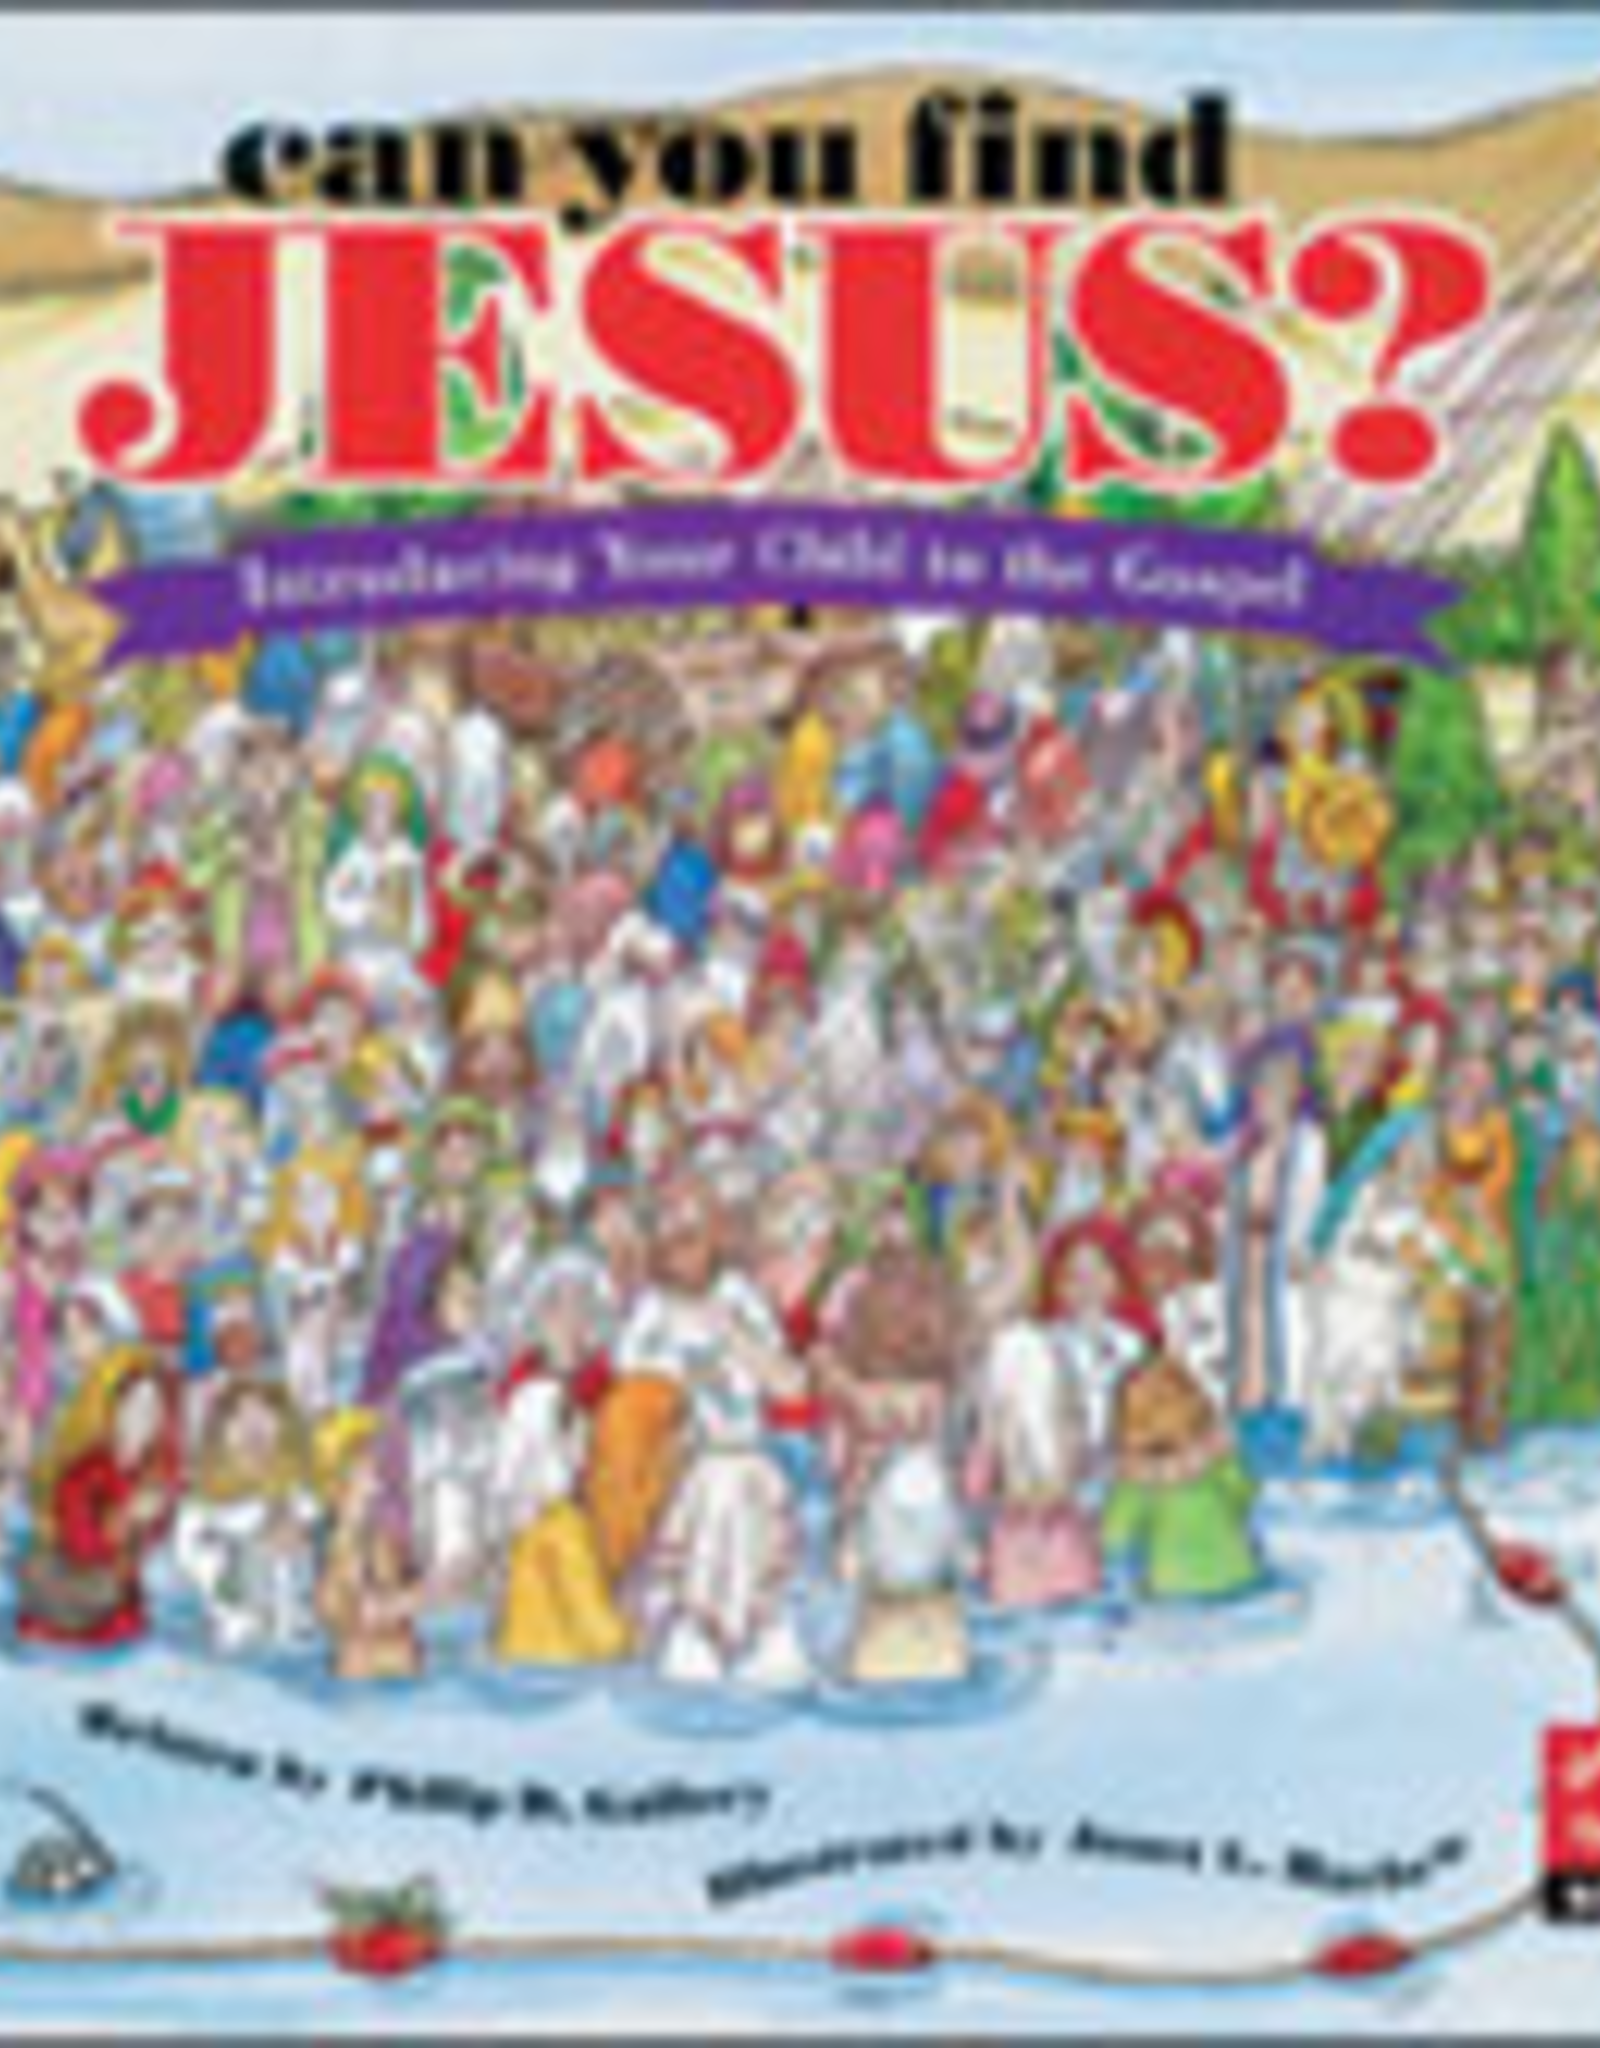 Franciscan Media Can You Find Jesus: Introducing Your Child to the Gospel, by Philip D. Gallery, Illustrated by Janet L. Harlow